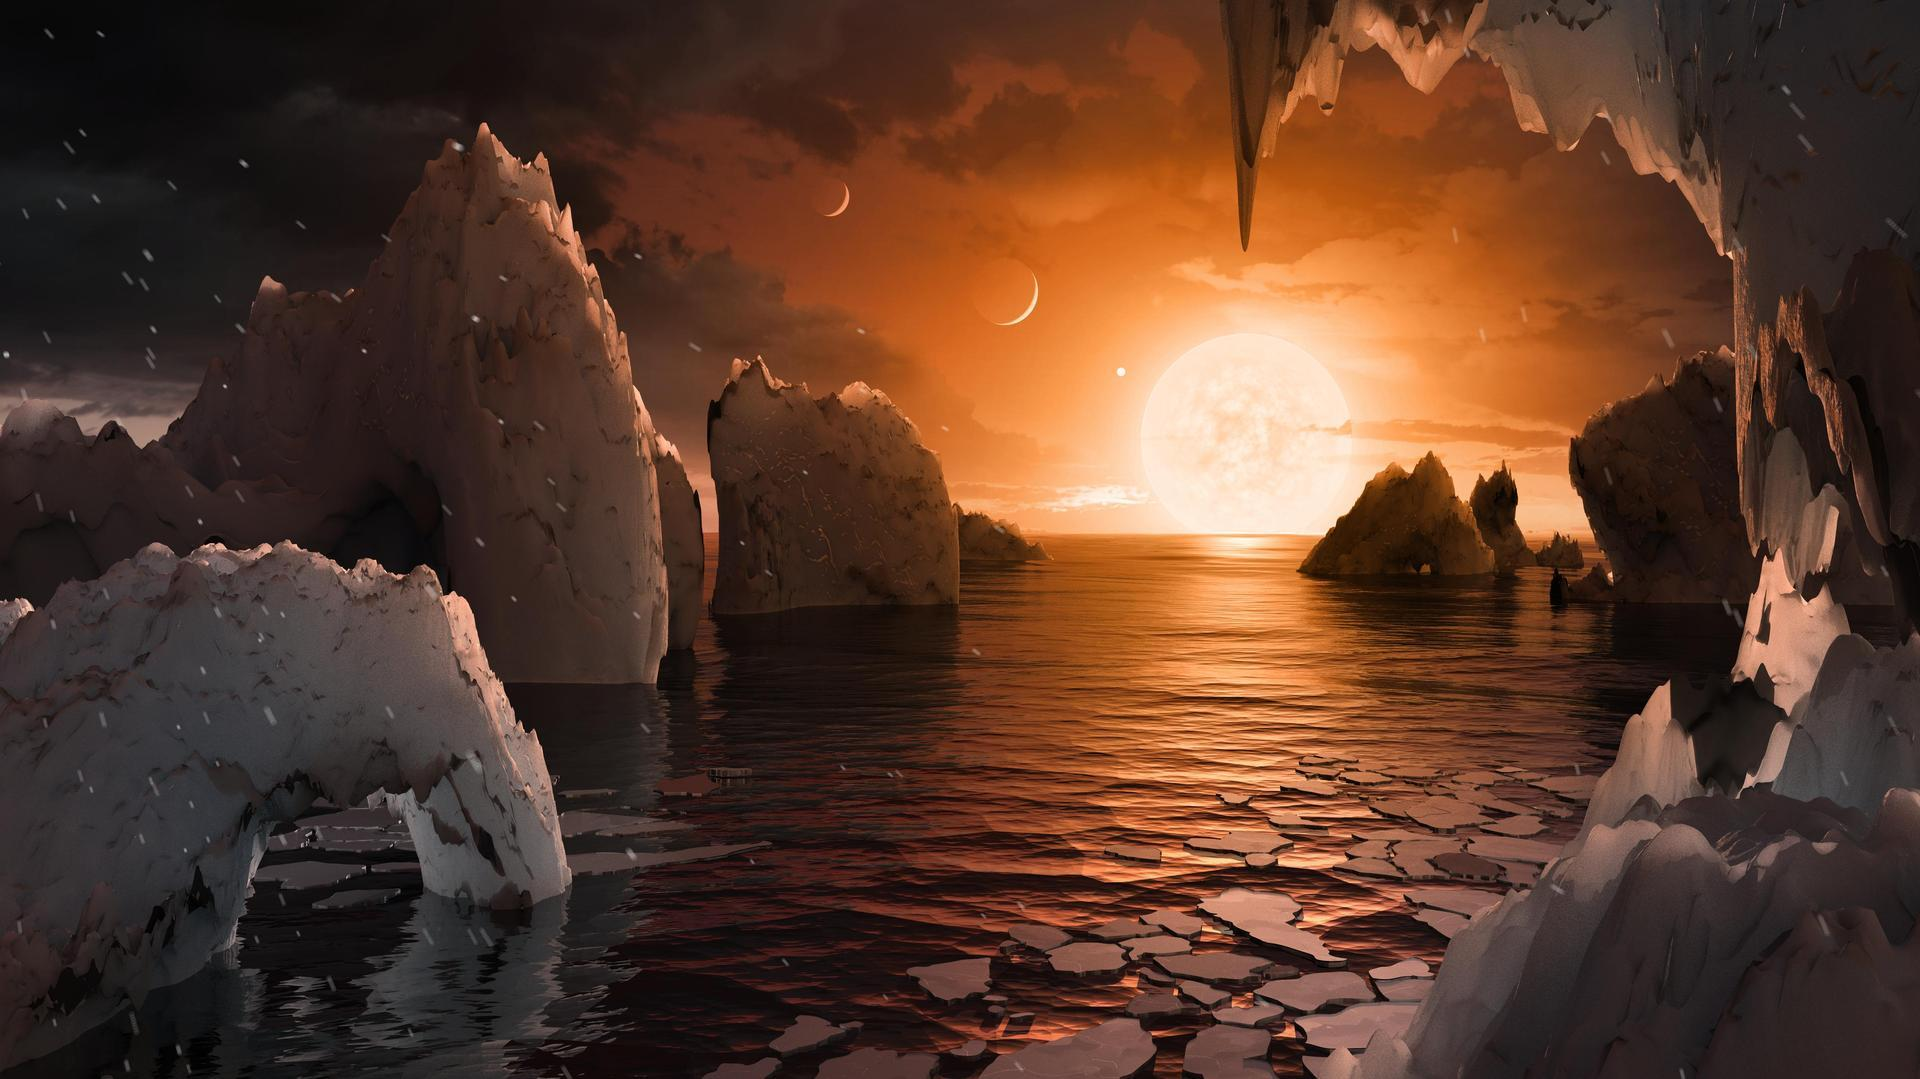 trappist-surface